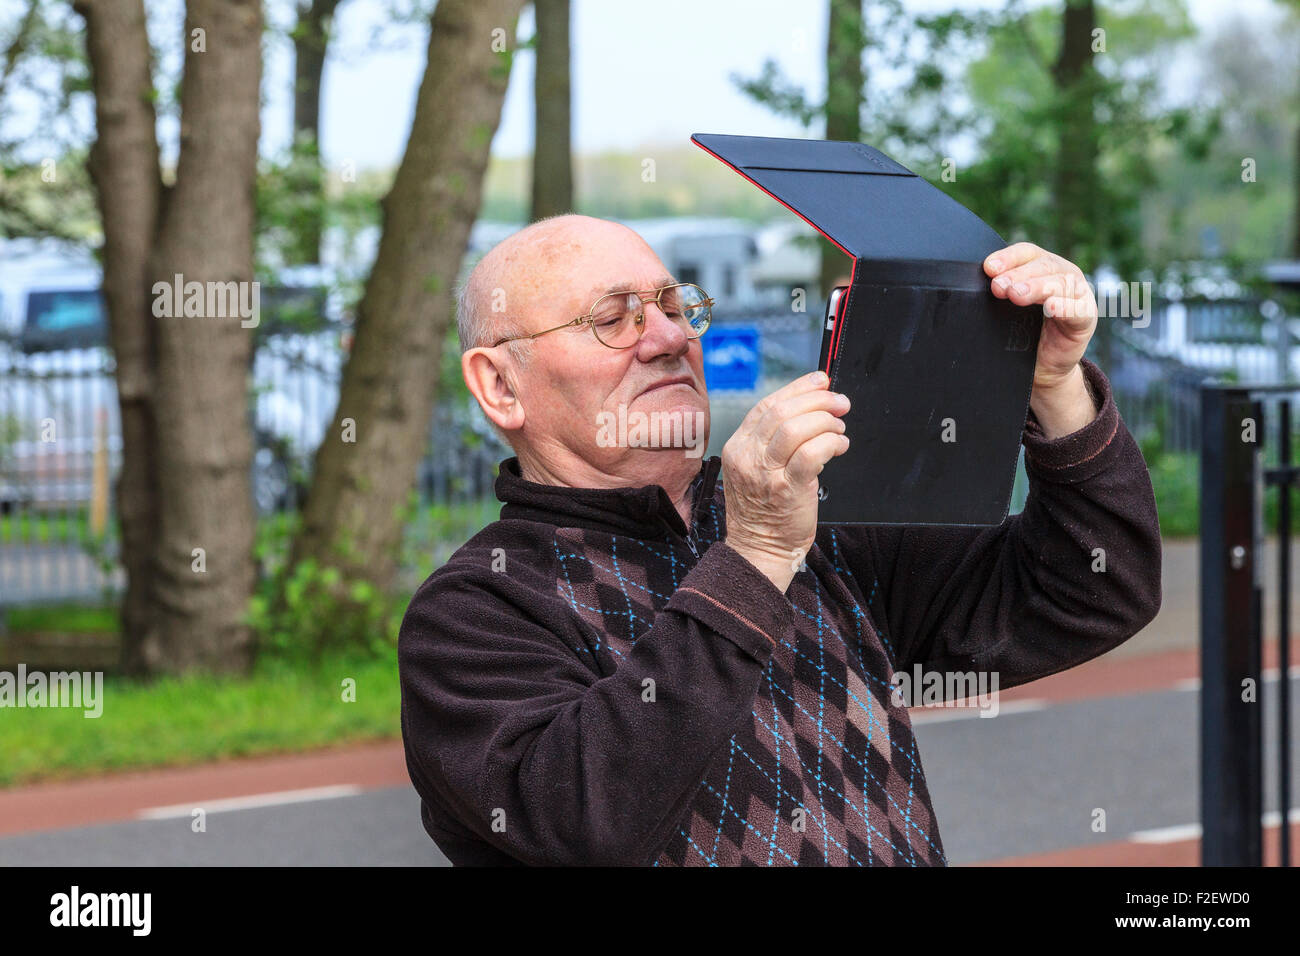 man taking picture photograph with tablet computer - Stock Image